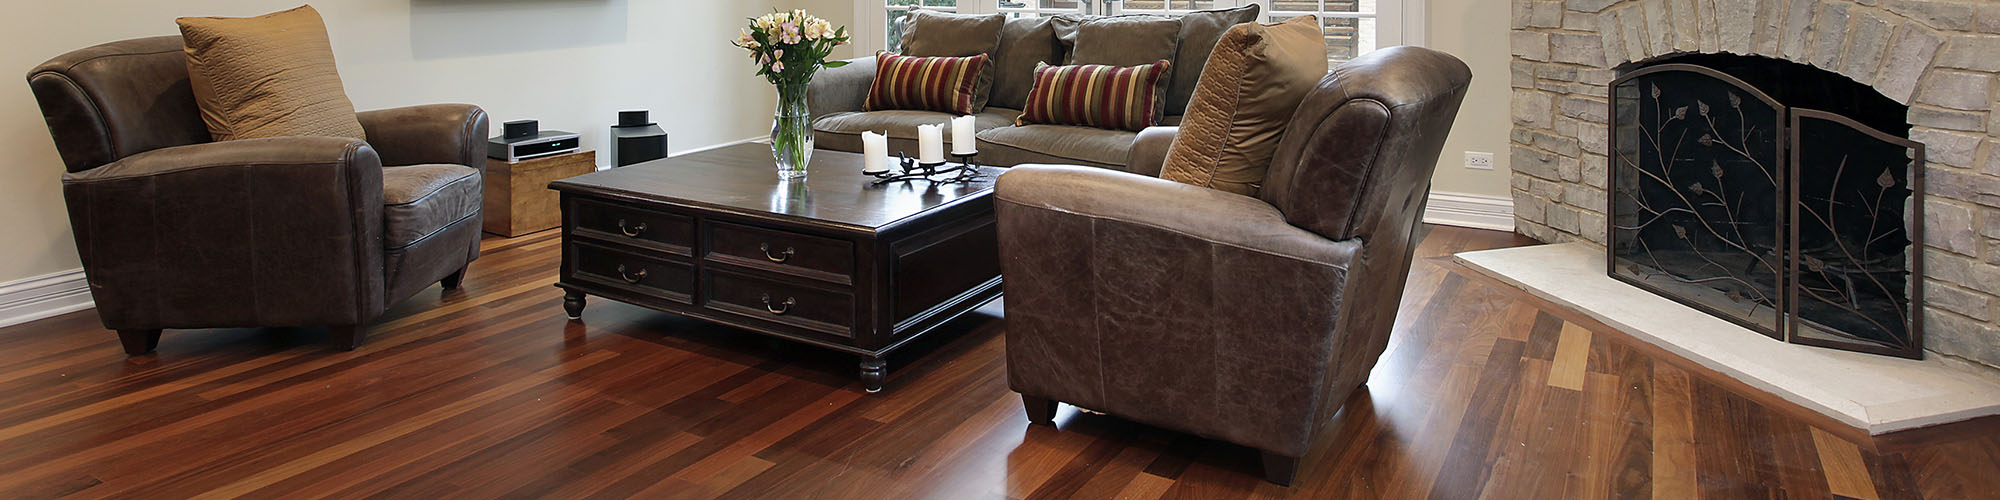 Hardwood flooring in cary nc quality in home installation for Hardwood flooring outlet